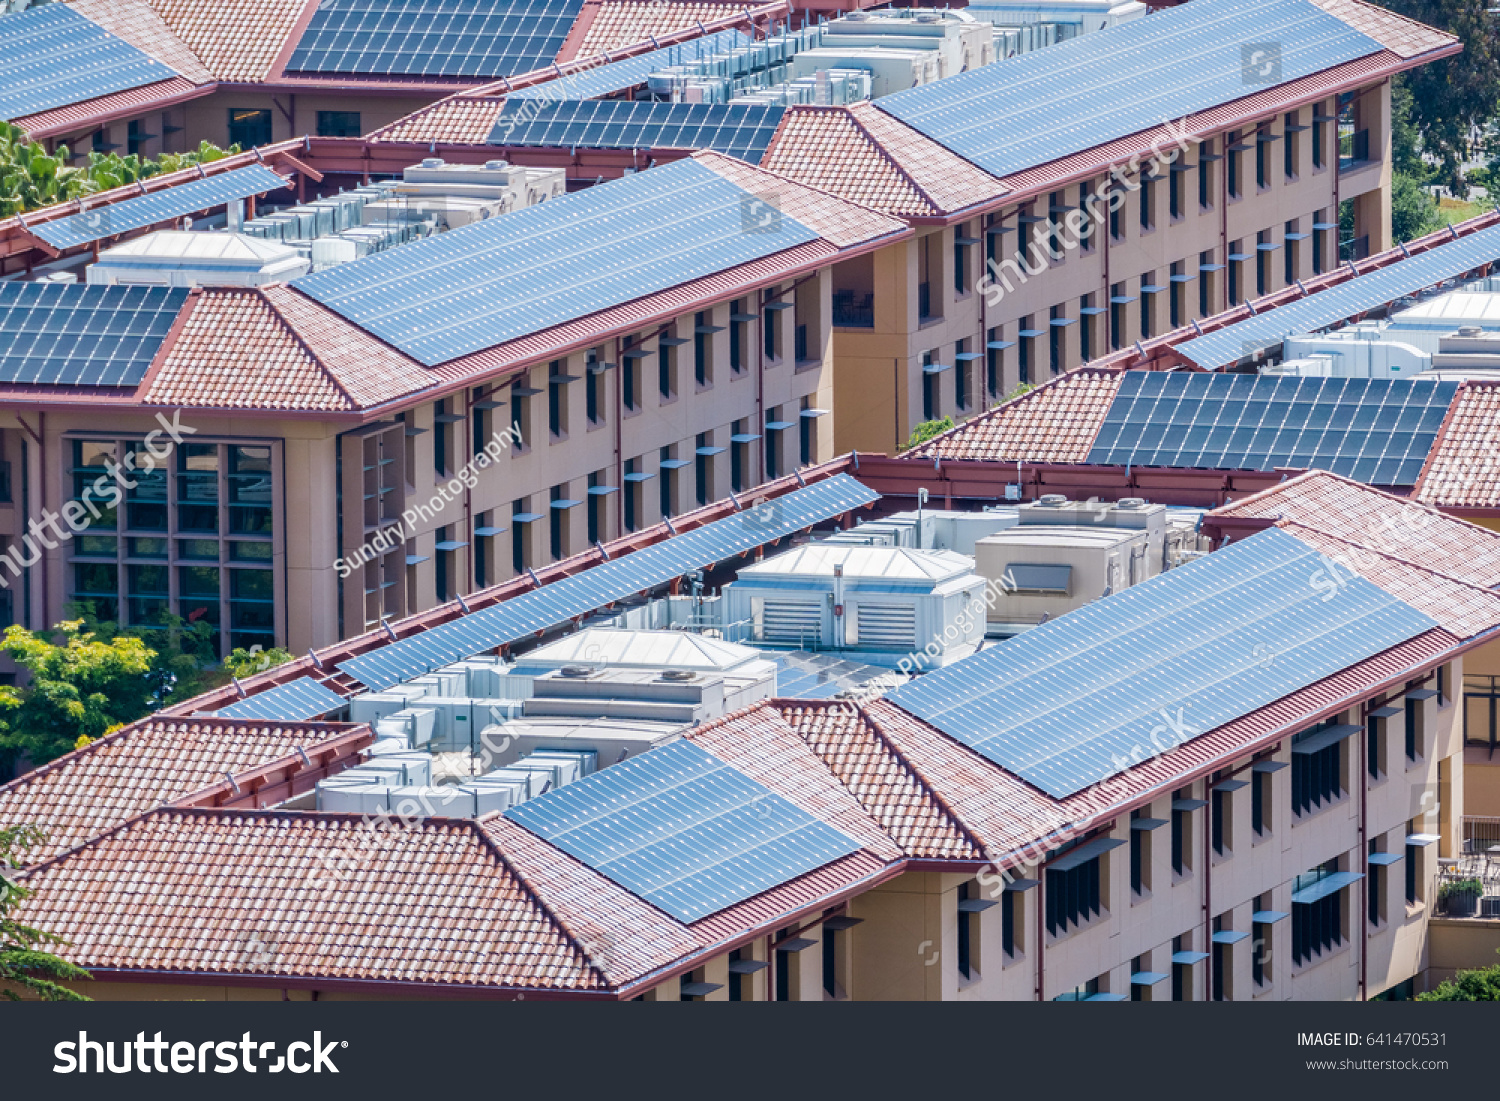 Solar Panels Installed On Tiled Rooftops Stock Photo (Royalty Free ...